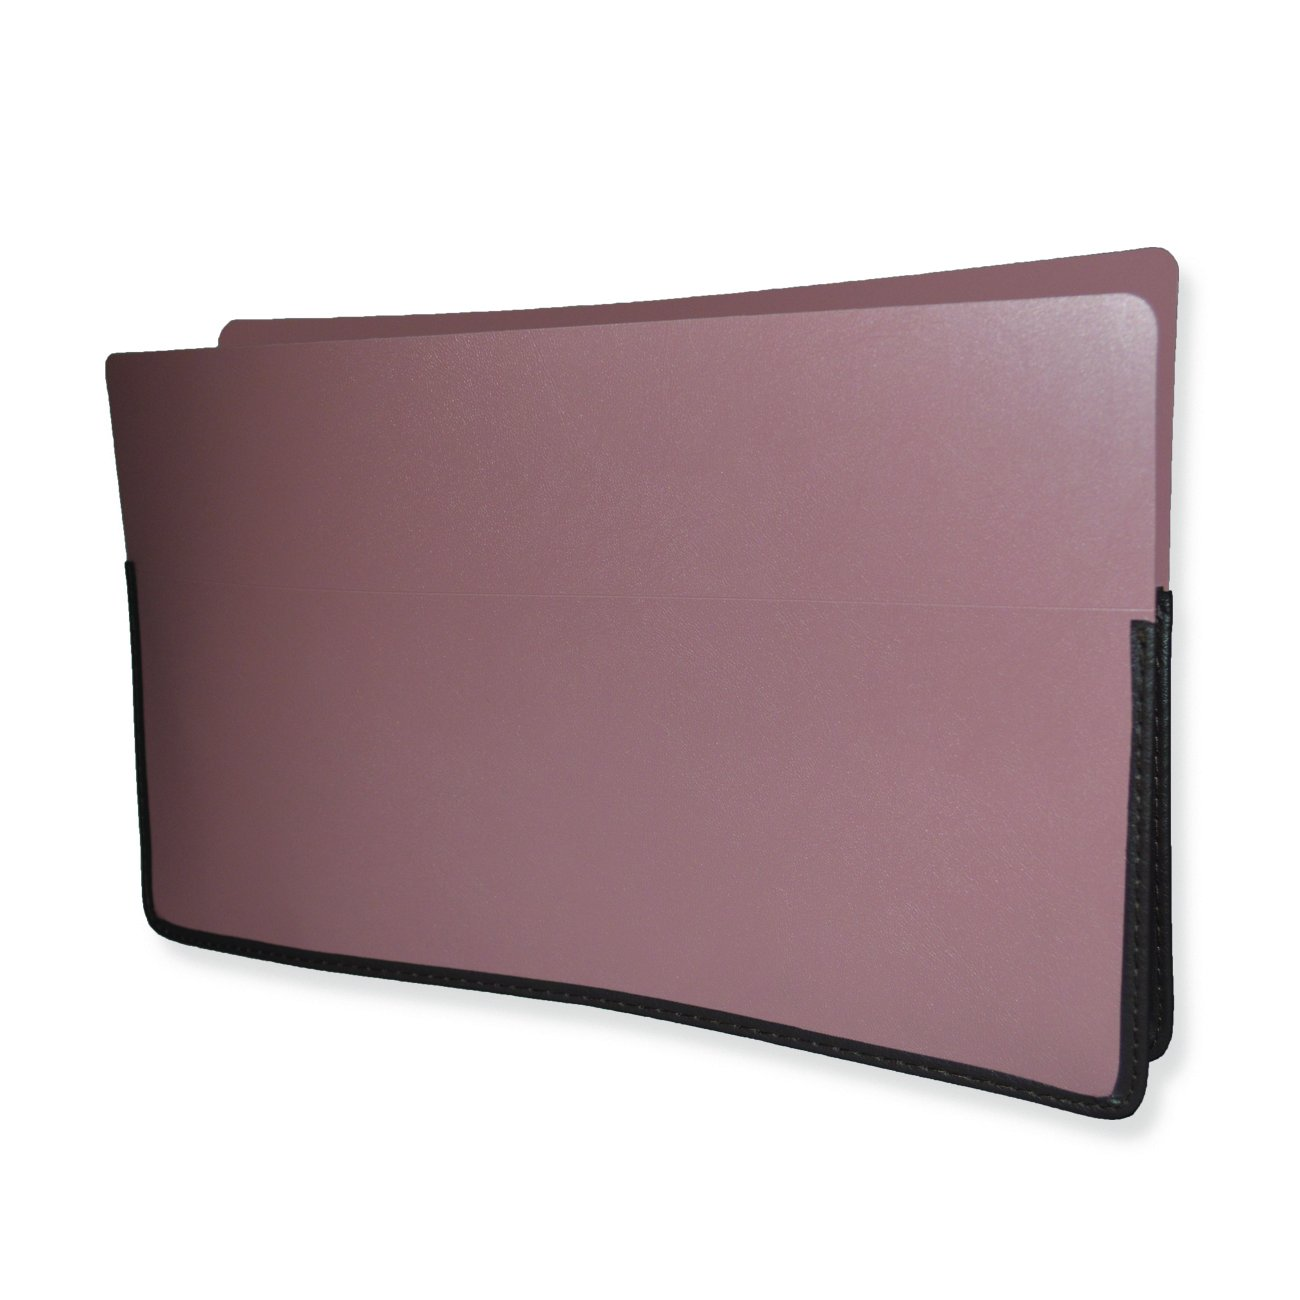 Case-Guard Expandable File Pocket, Polyvinyl Material, Russet Color, Top Tab, Legal Size 9 2/3'' x 15'' with 5 1/4'' Expansion, 25 per Carton